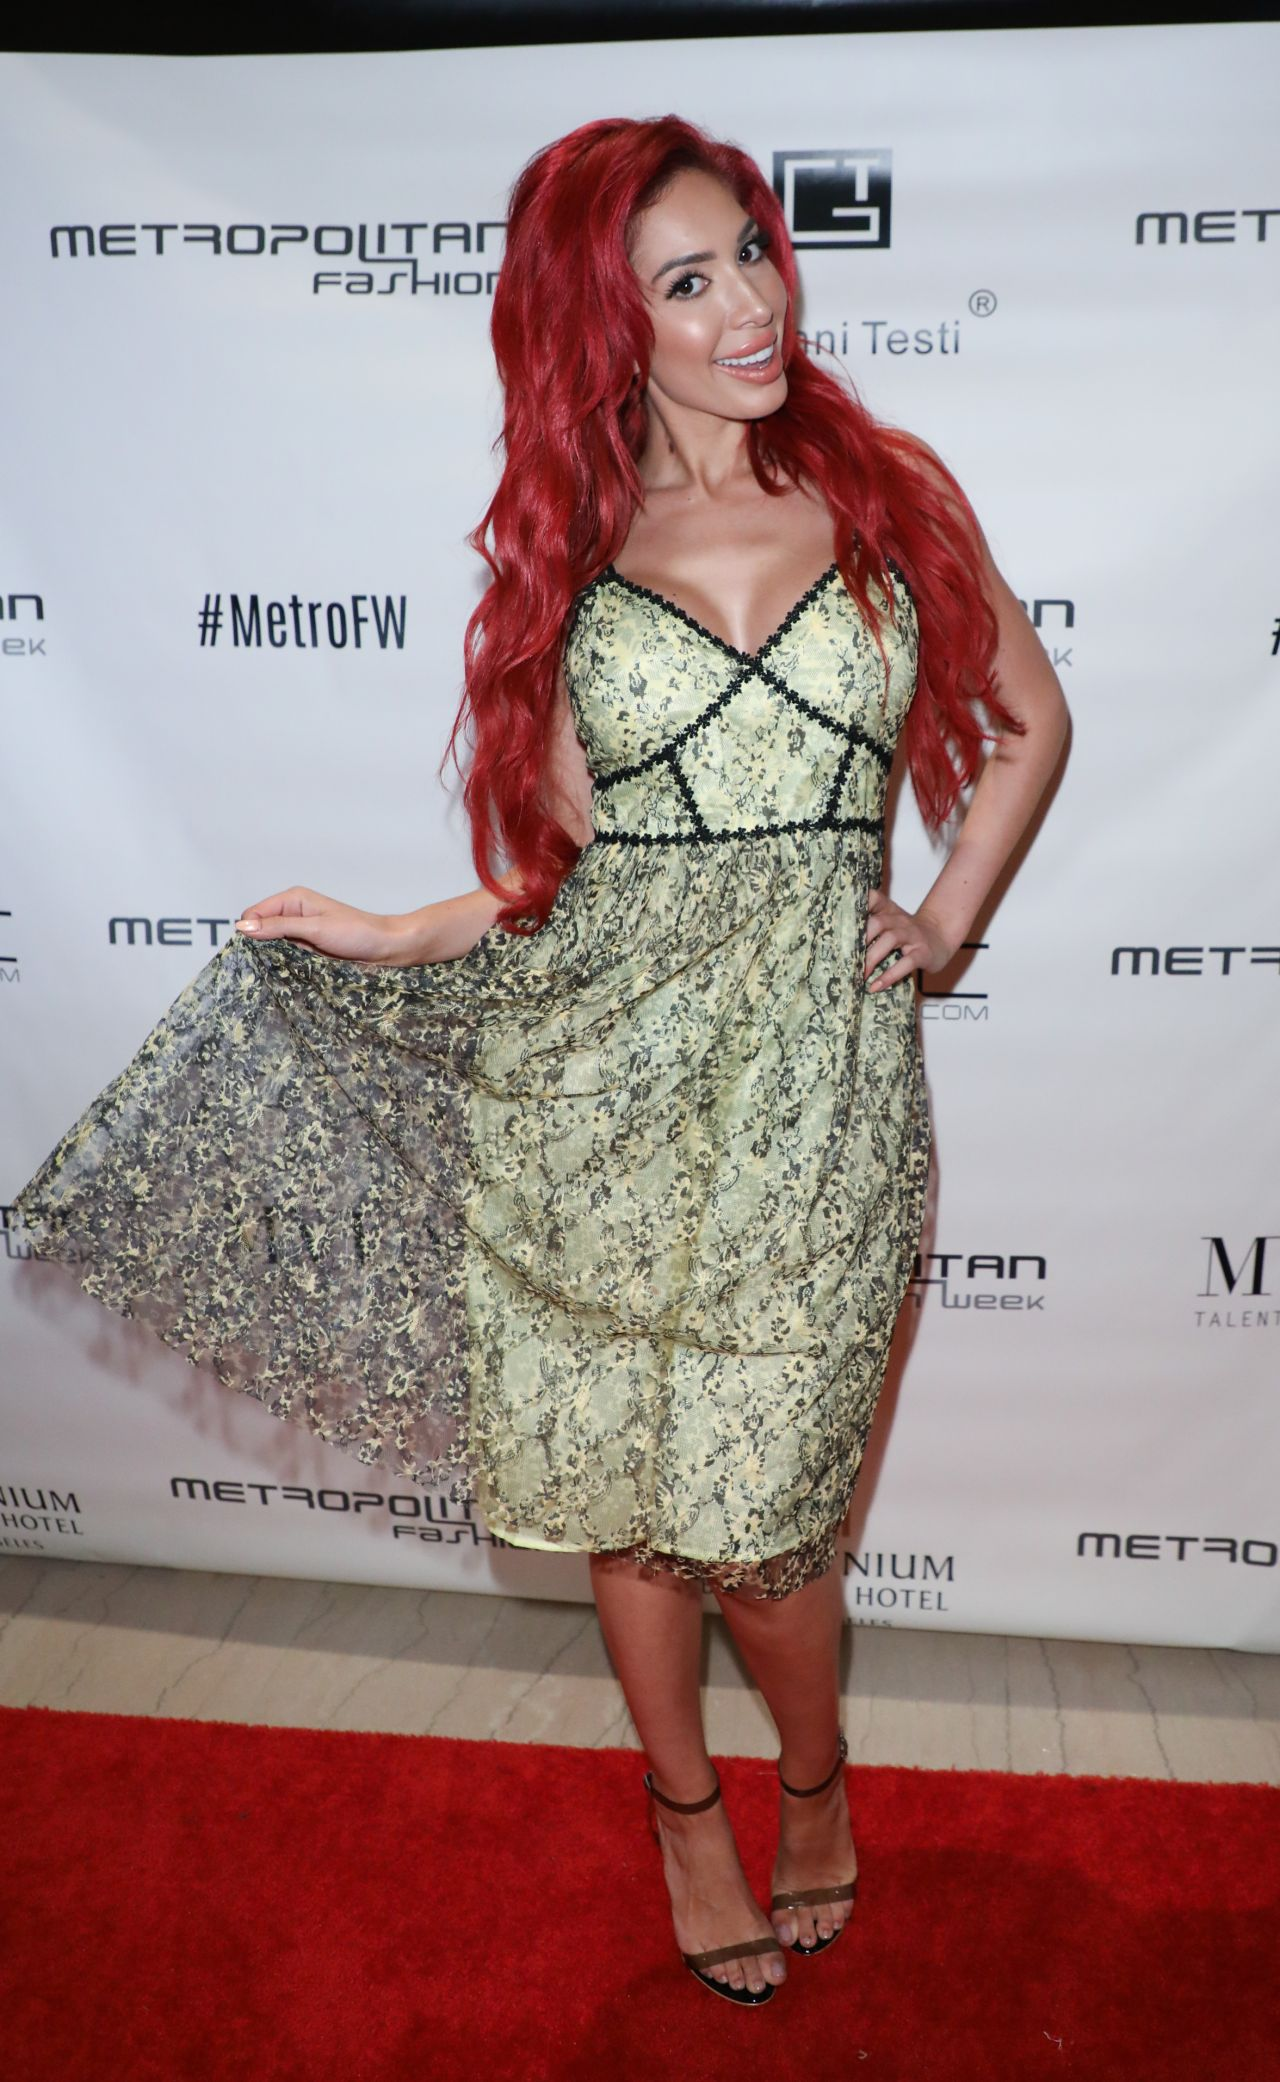 farrah-abraham-metropolitan-fashion-week-in-la-03-29-2018-4.jpg